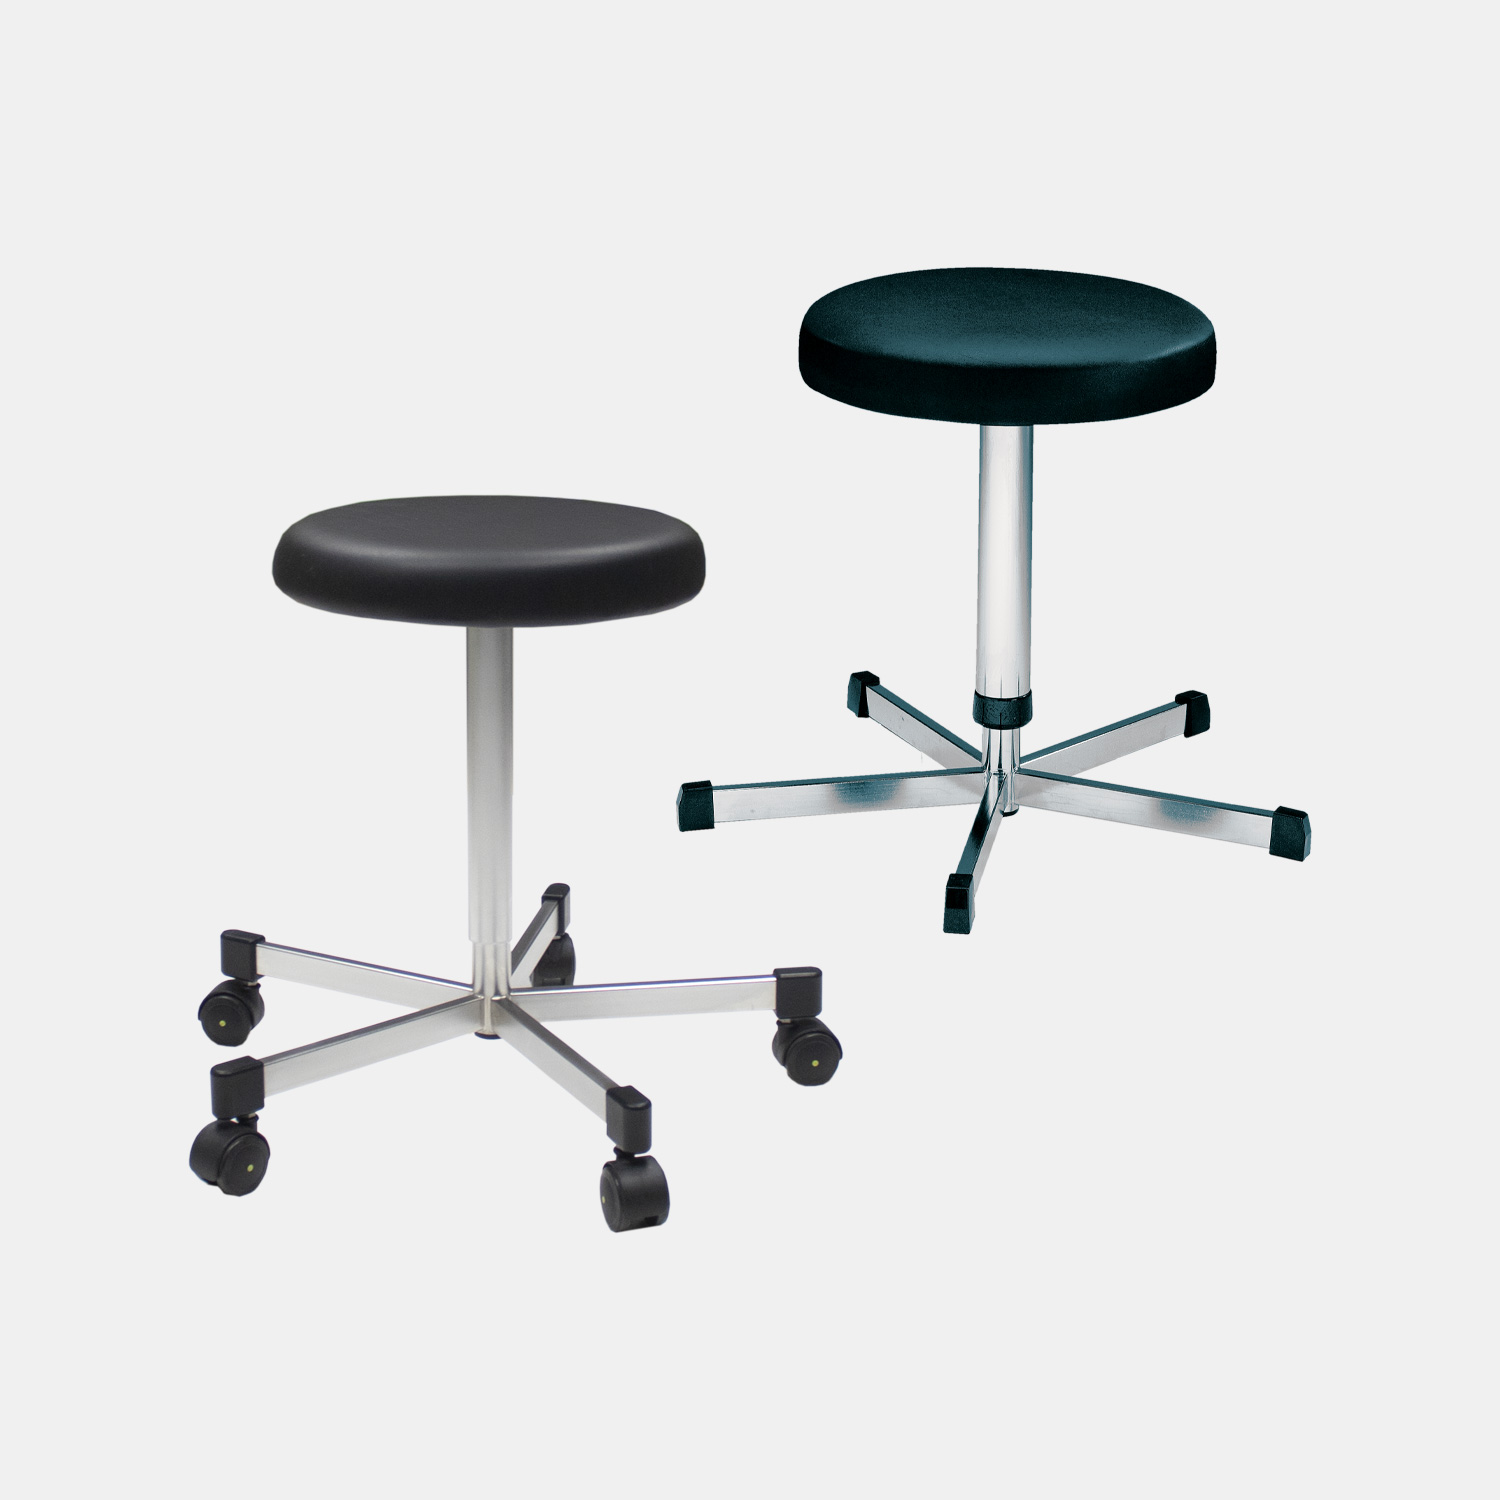 or stools